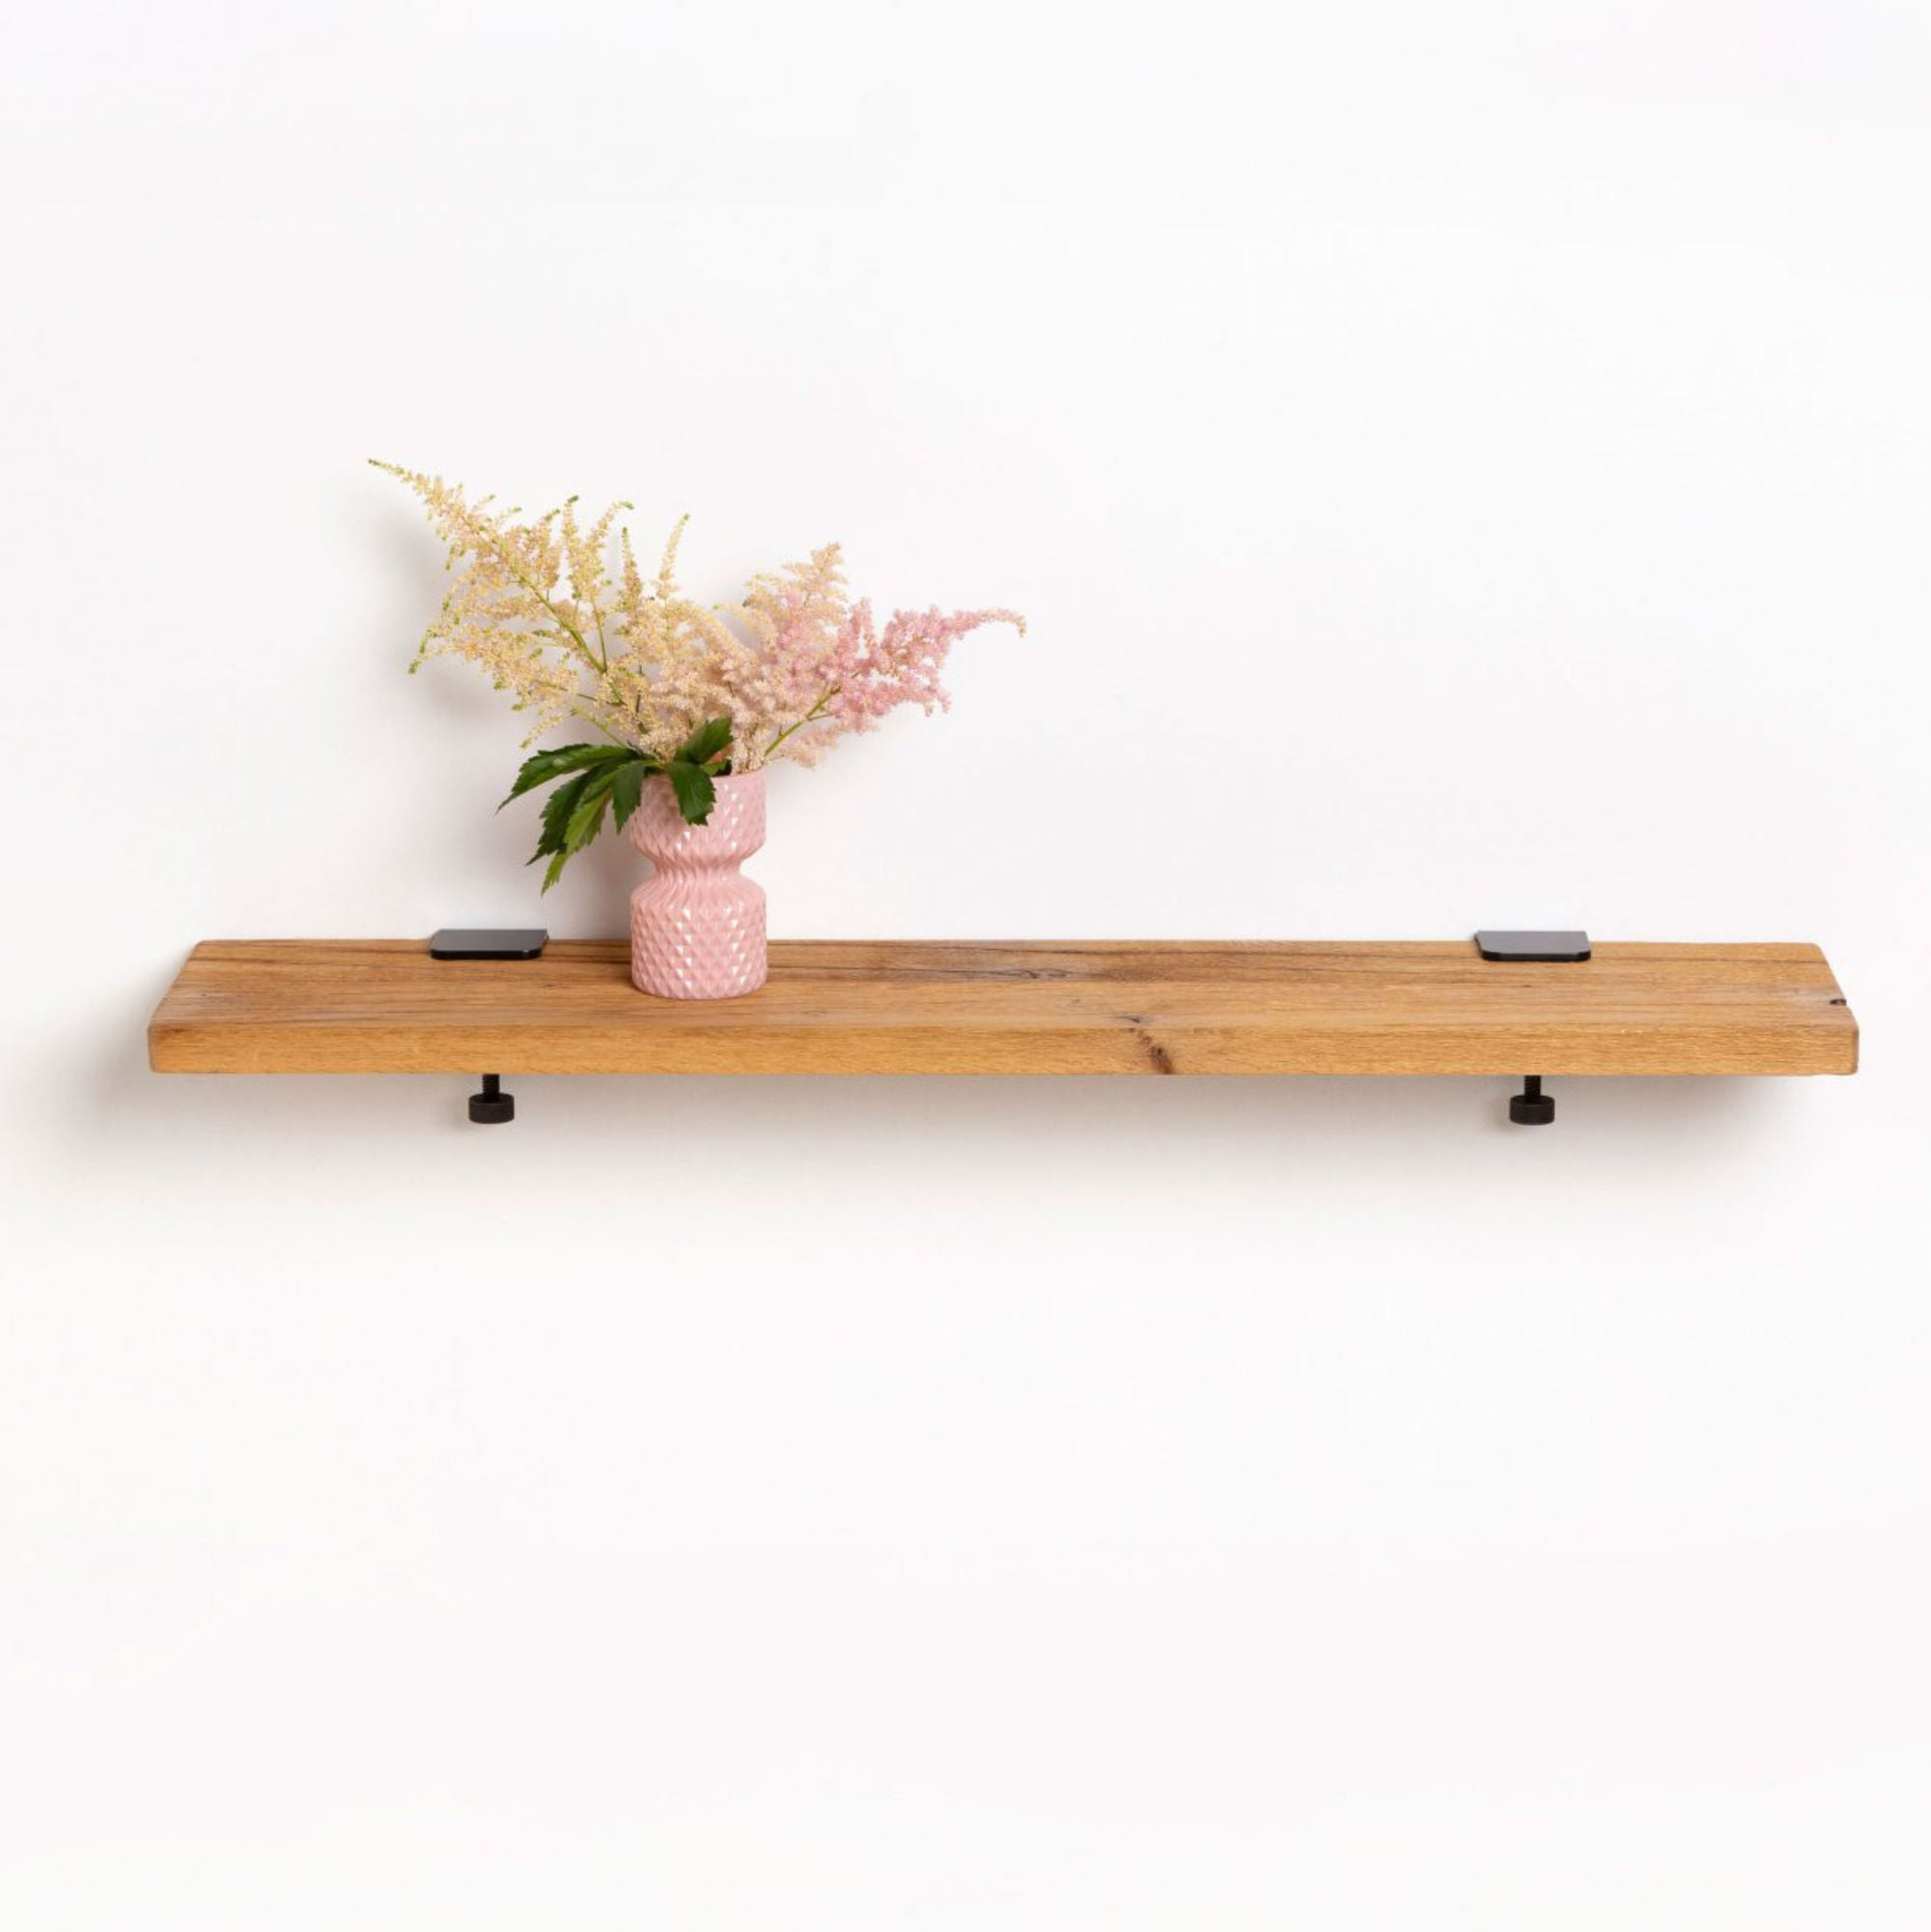 Tiptop Reclaimed wood shelf, 90 * 20cm